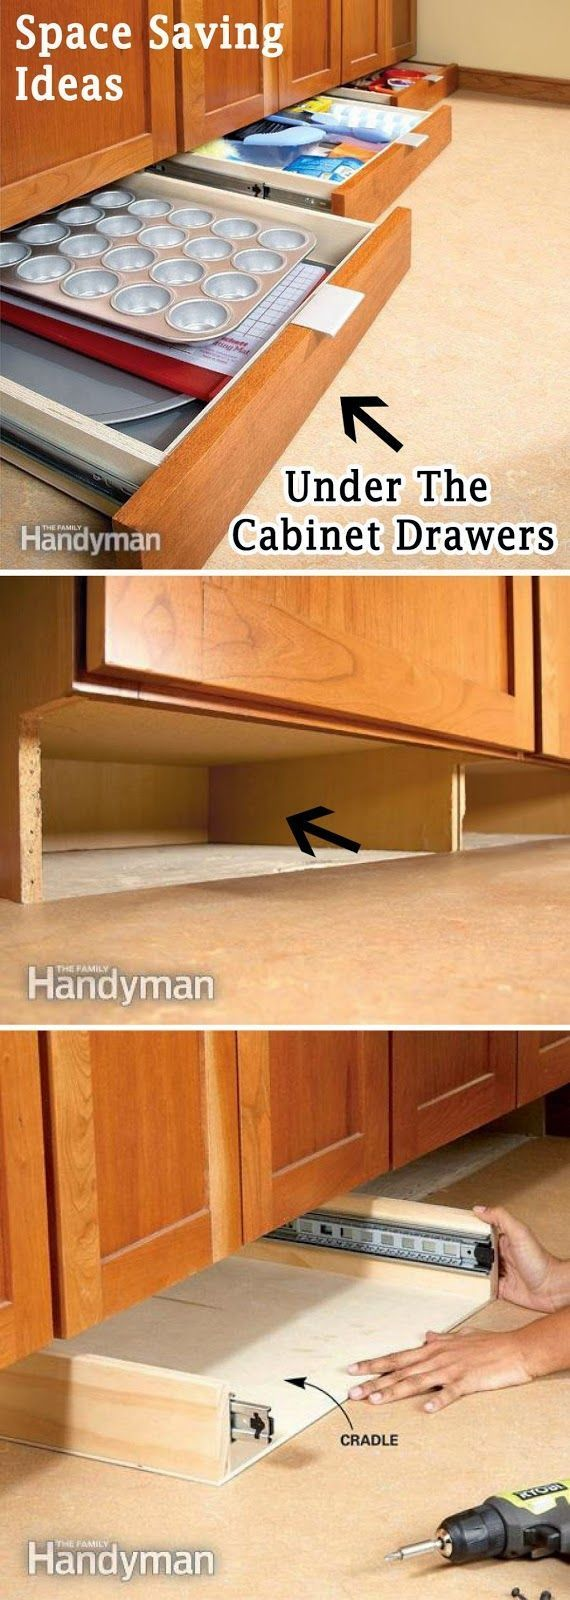 Terrific 17 Best Ideas About Space Saving On Pinterest Small Space Largest Home Design Picture Inspirations Pitcheantrous